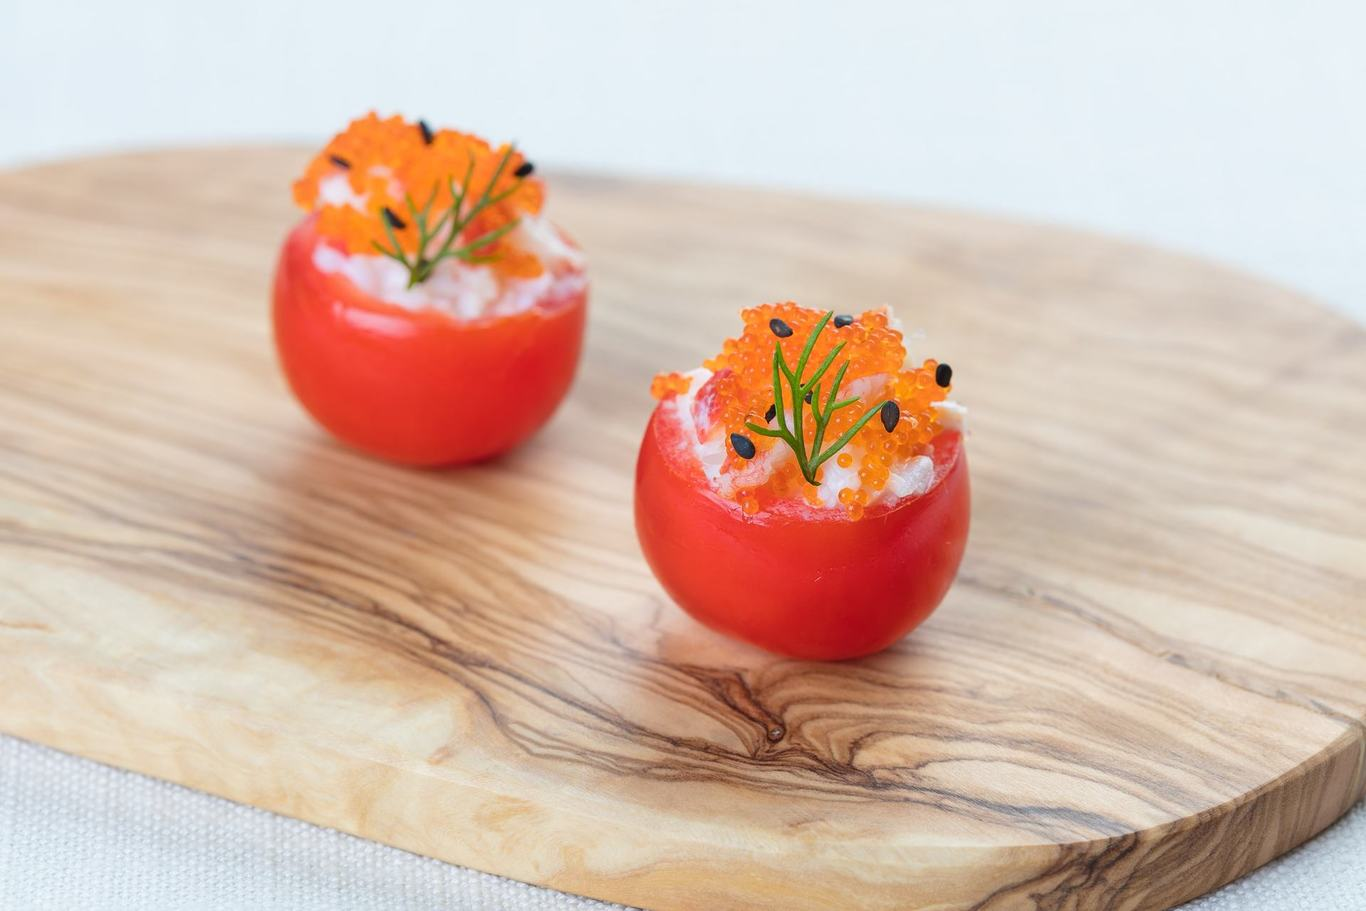 Сherry tomato with crab (1 pc)